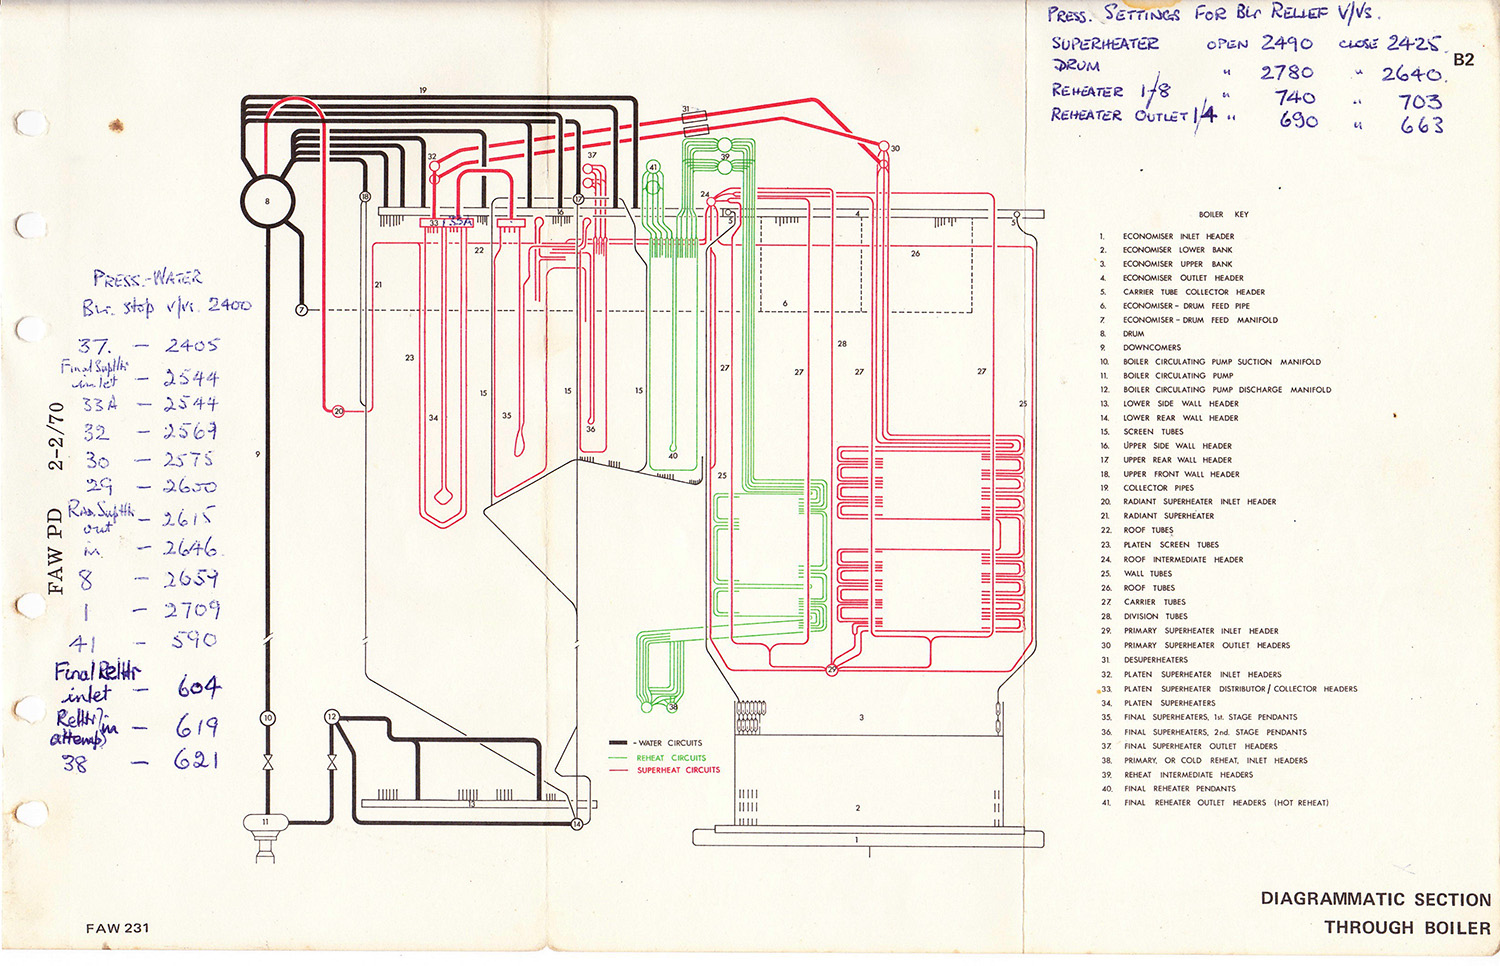 Fawley Power Station Southampton Stations Of The Uk Plant Boiler Layout Diagrammatic Section Through From Details Handbook